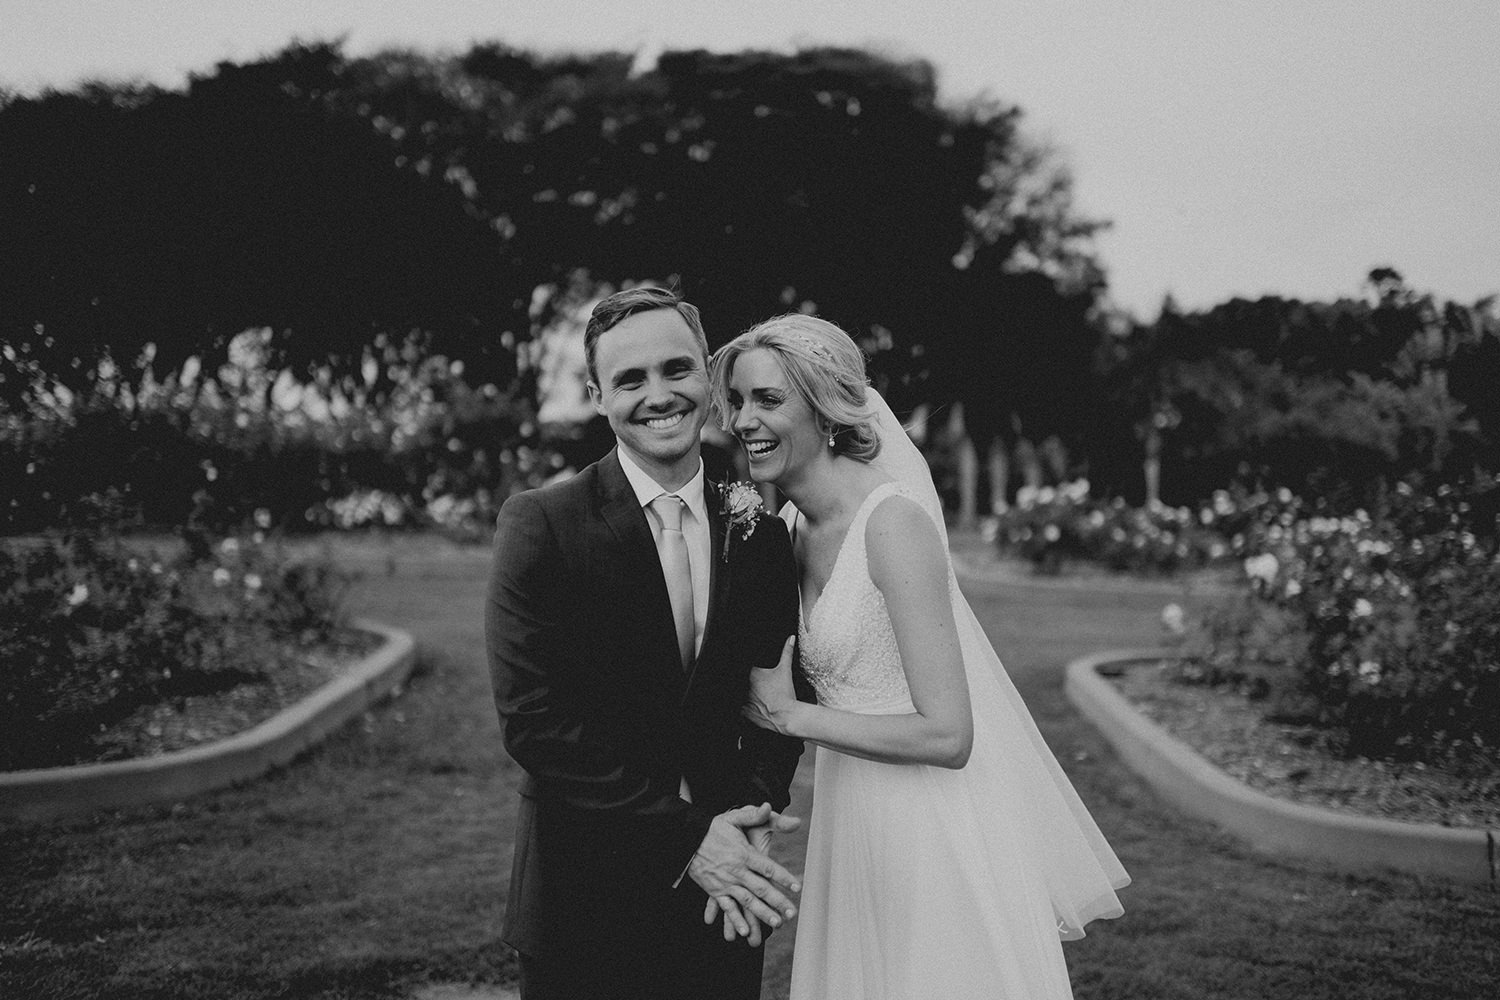 Happy bride and groom in New Farm Park, Brisbane